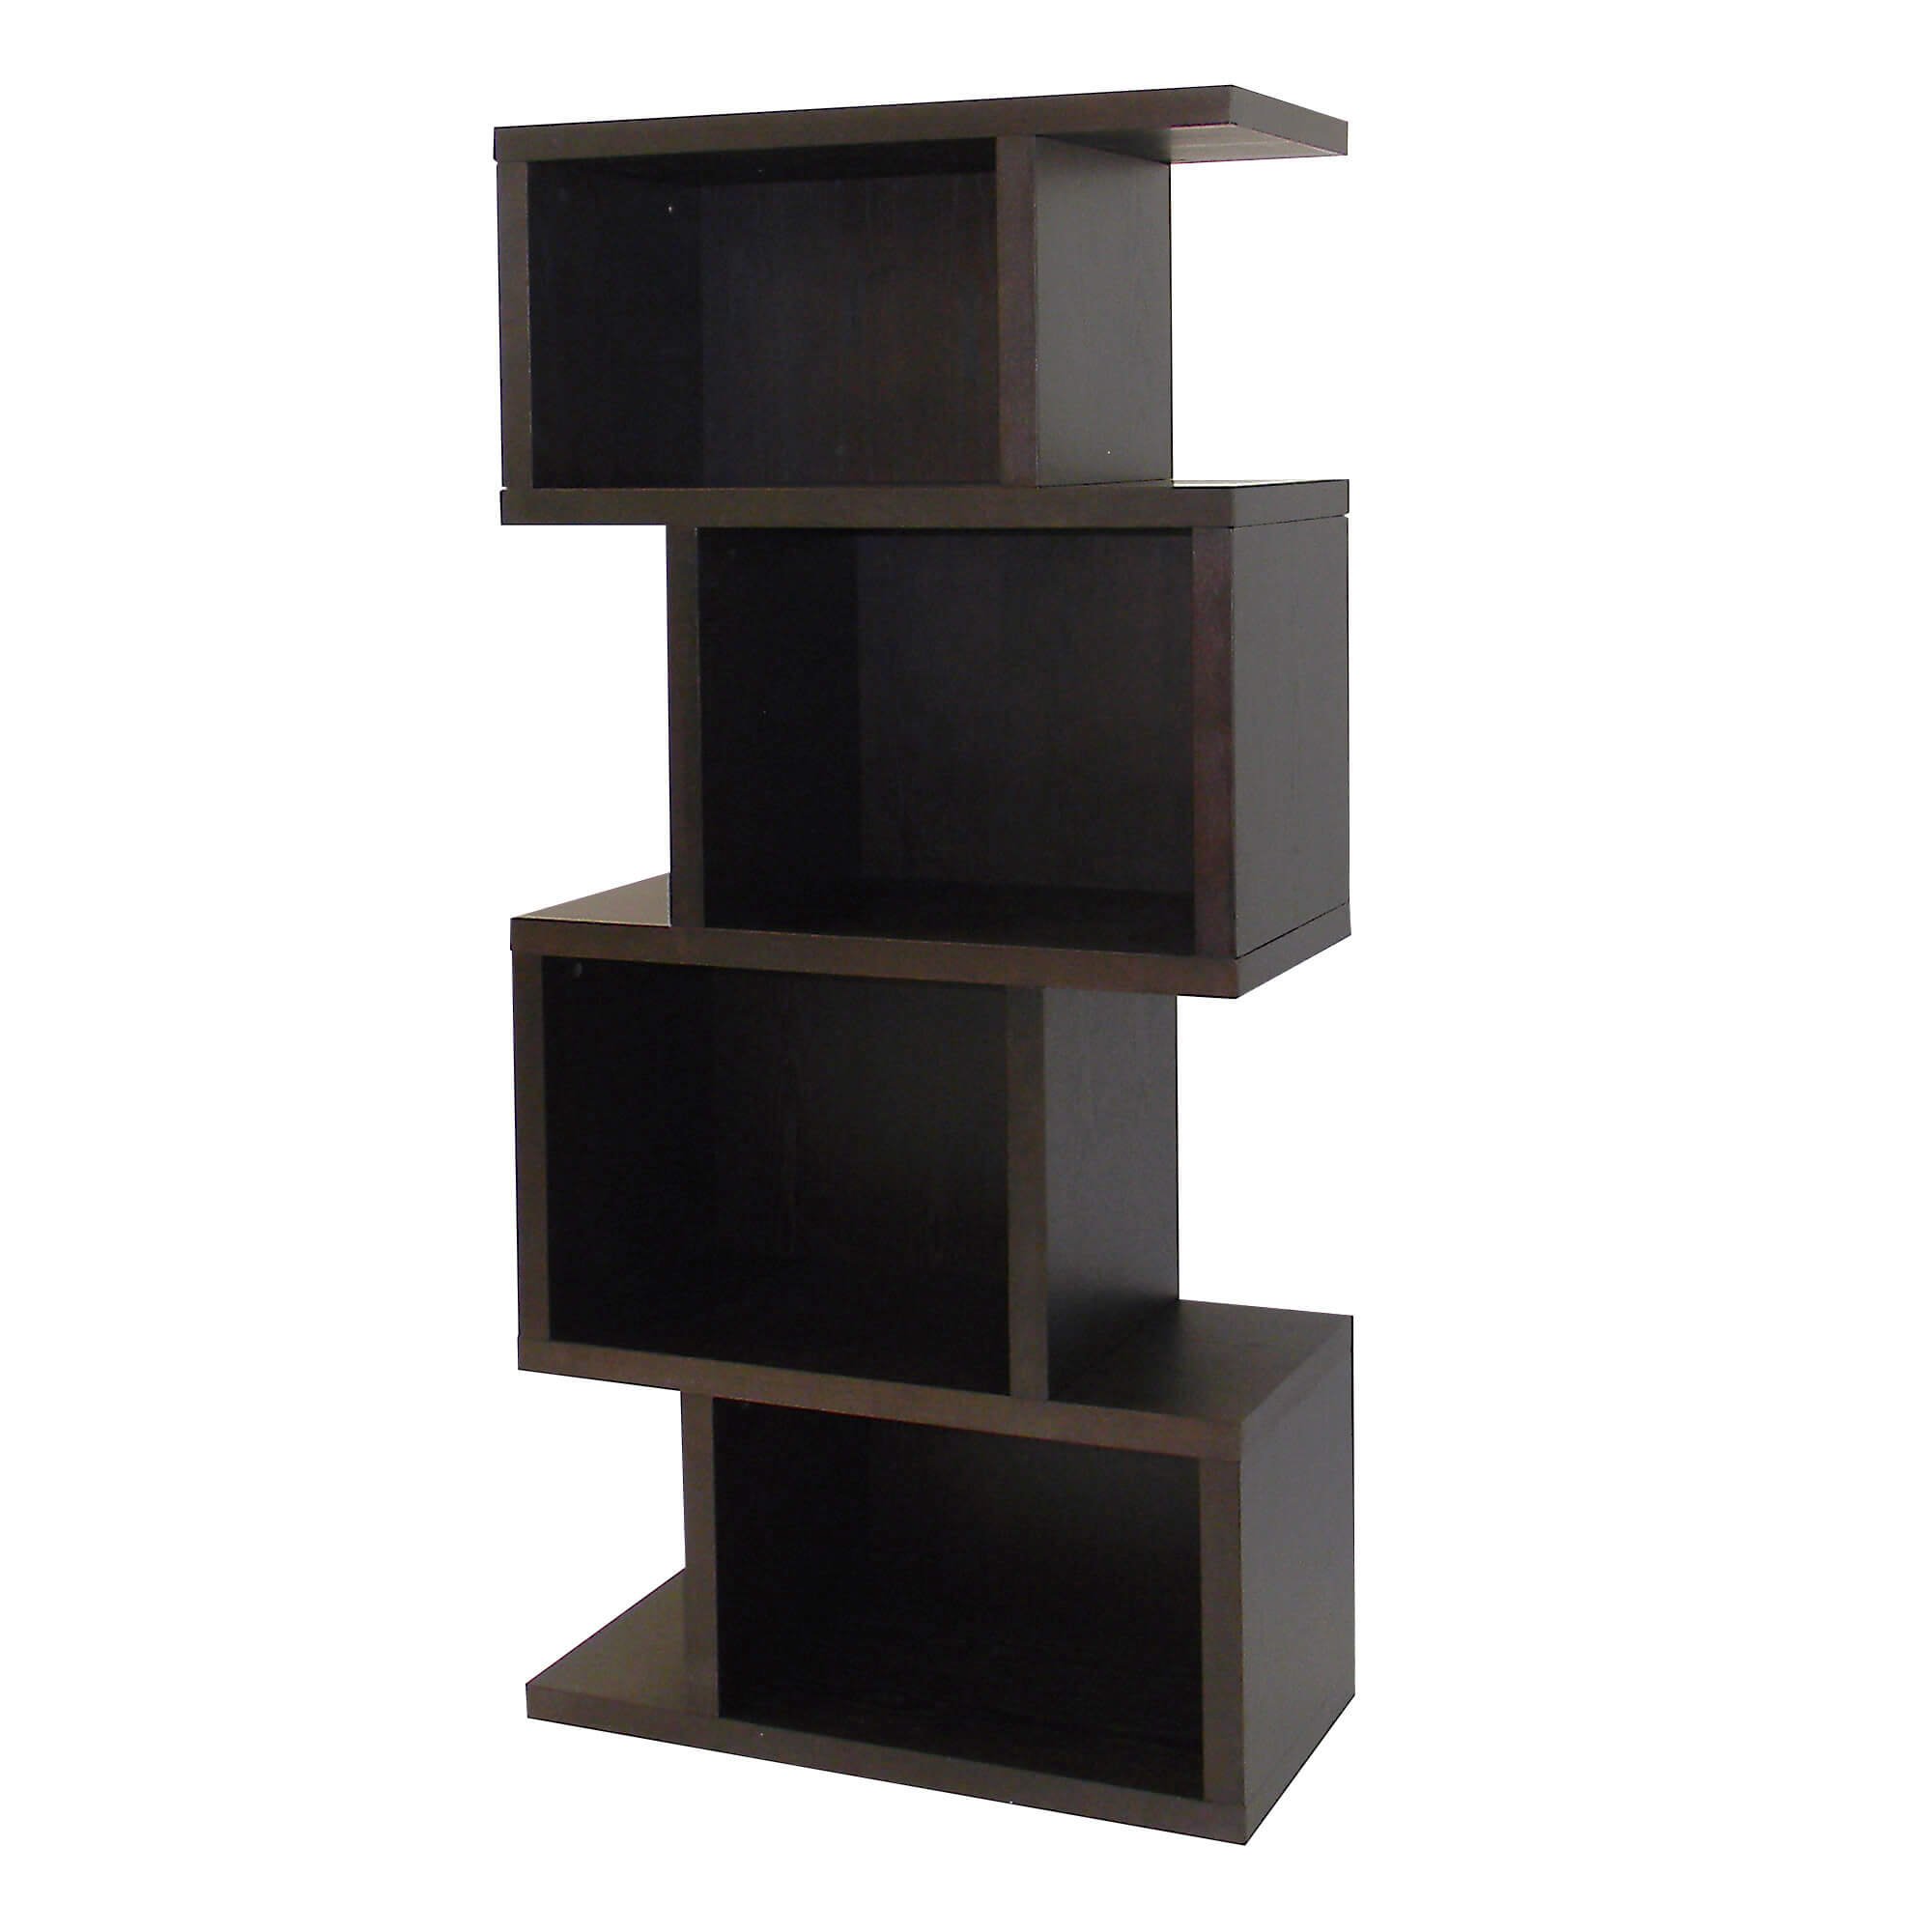 Cube Storage Shelves 17 Types Of Cube Shelves Bookcases And Storage Options